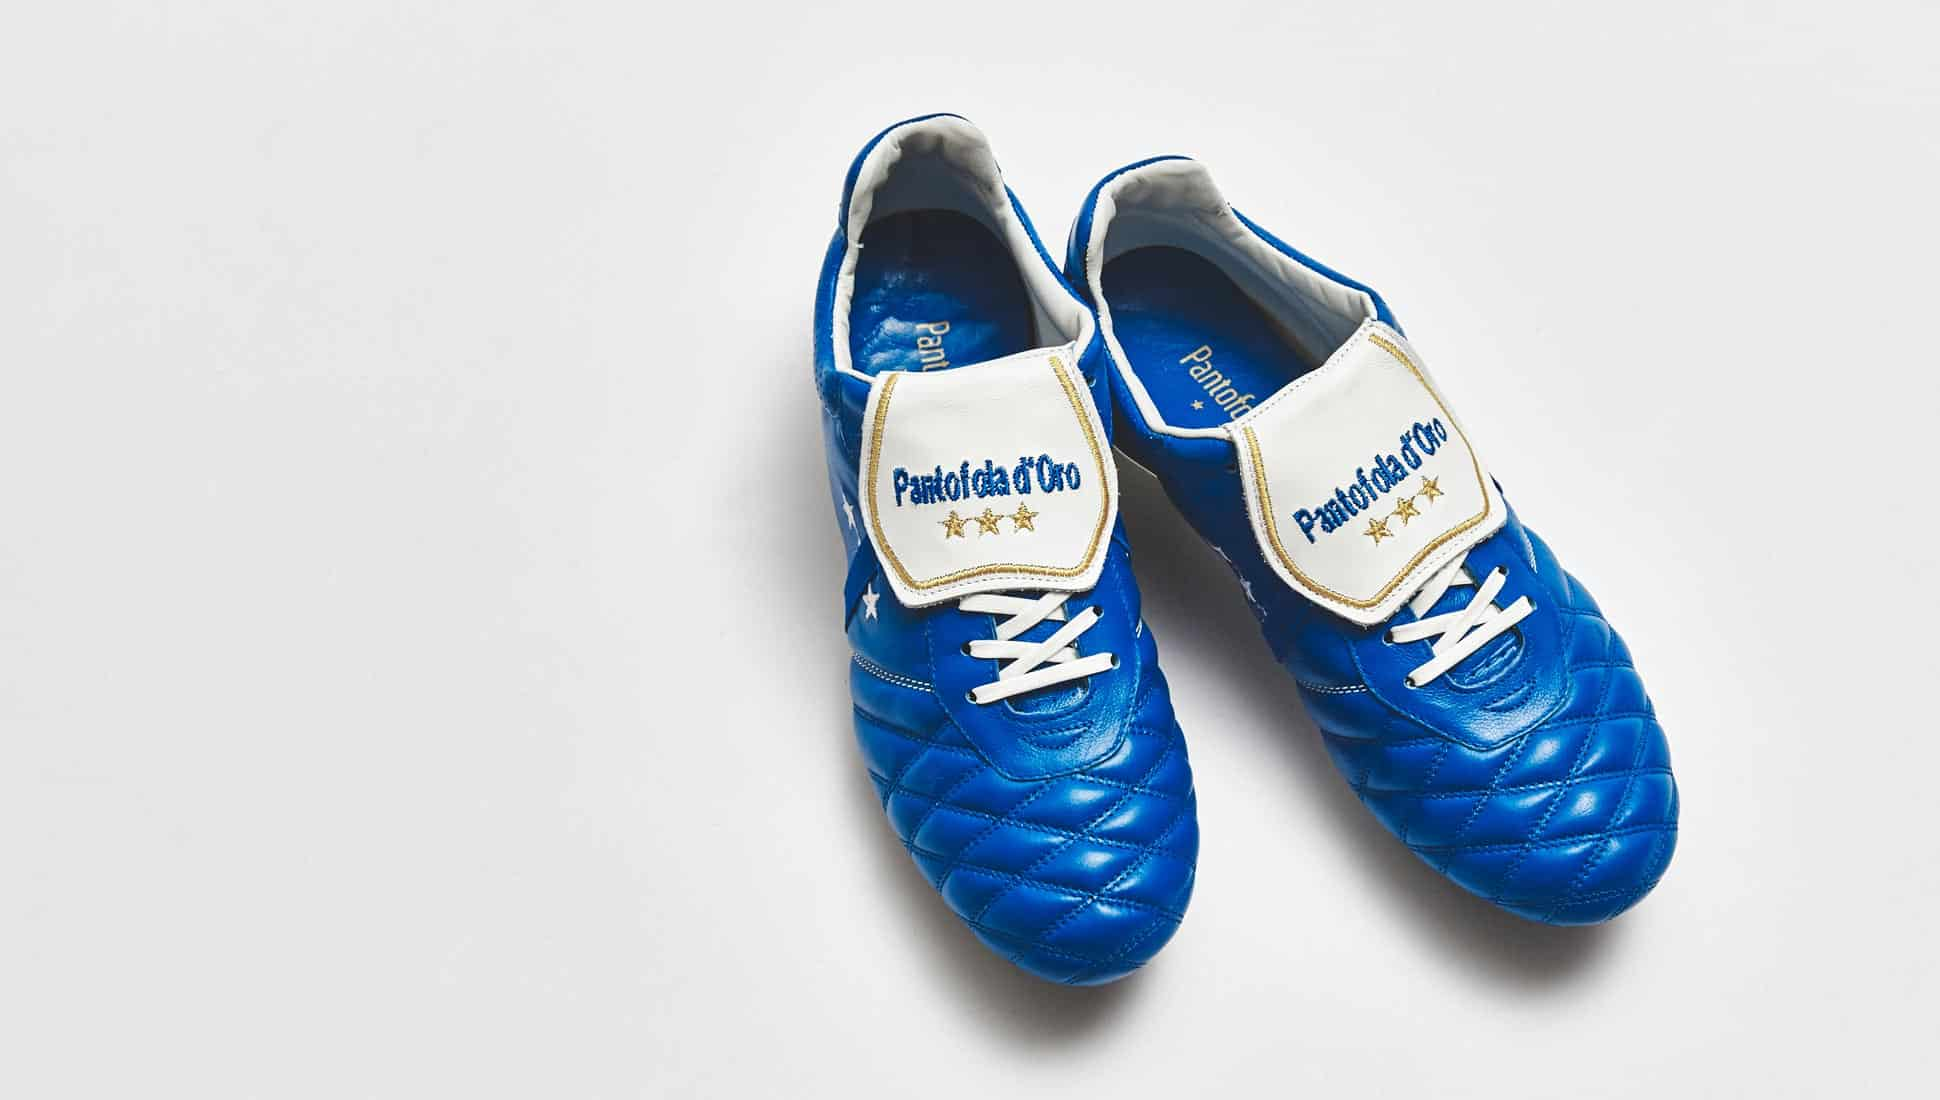 chaussures-football-pantofola-doro-emidio-italia-blue-1